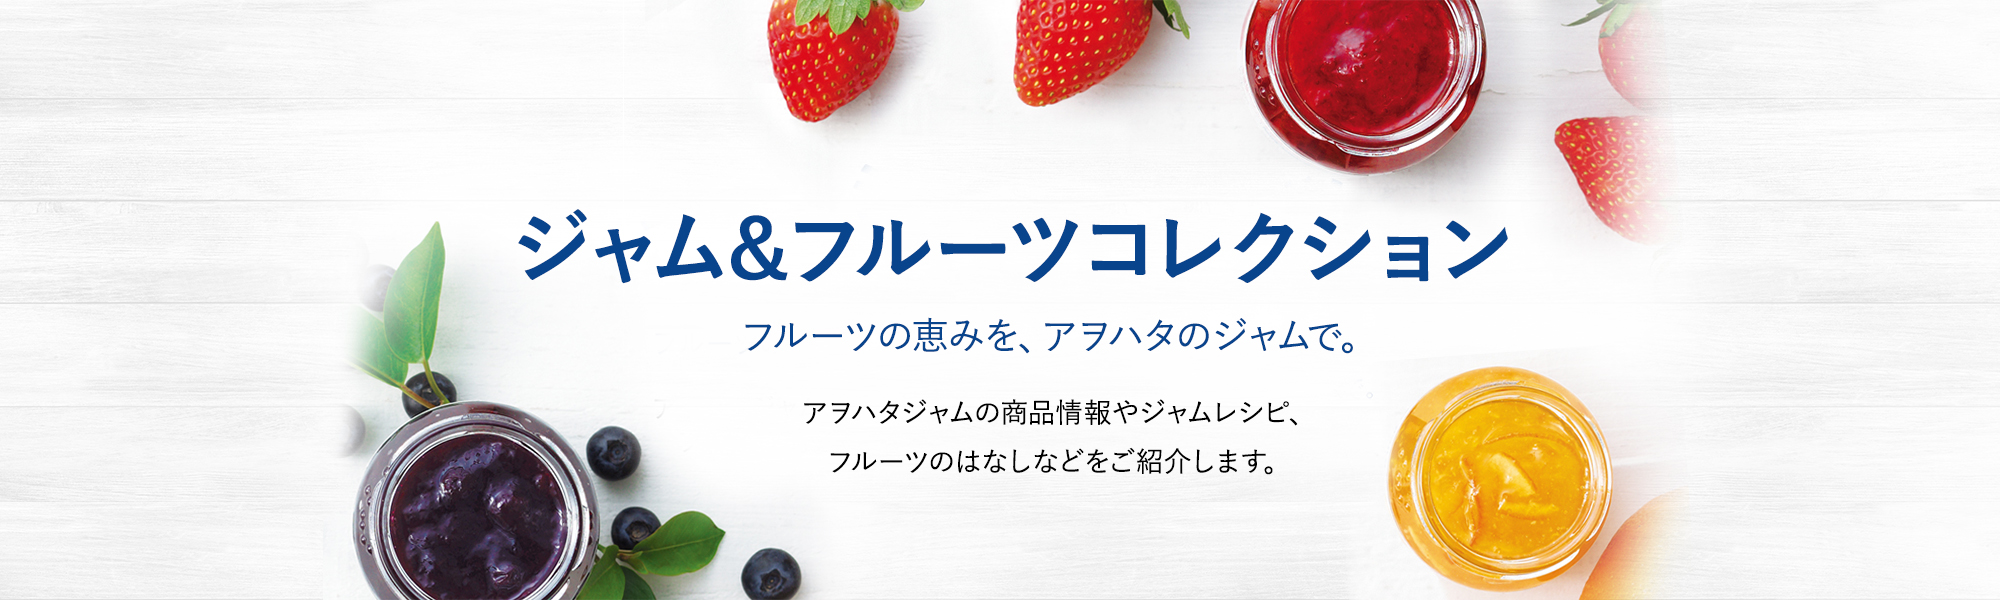 Jam & Fruits Collectionサイトへ